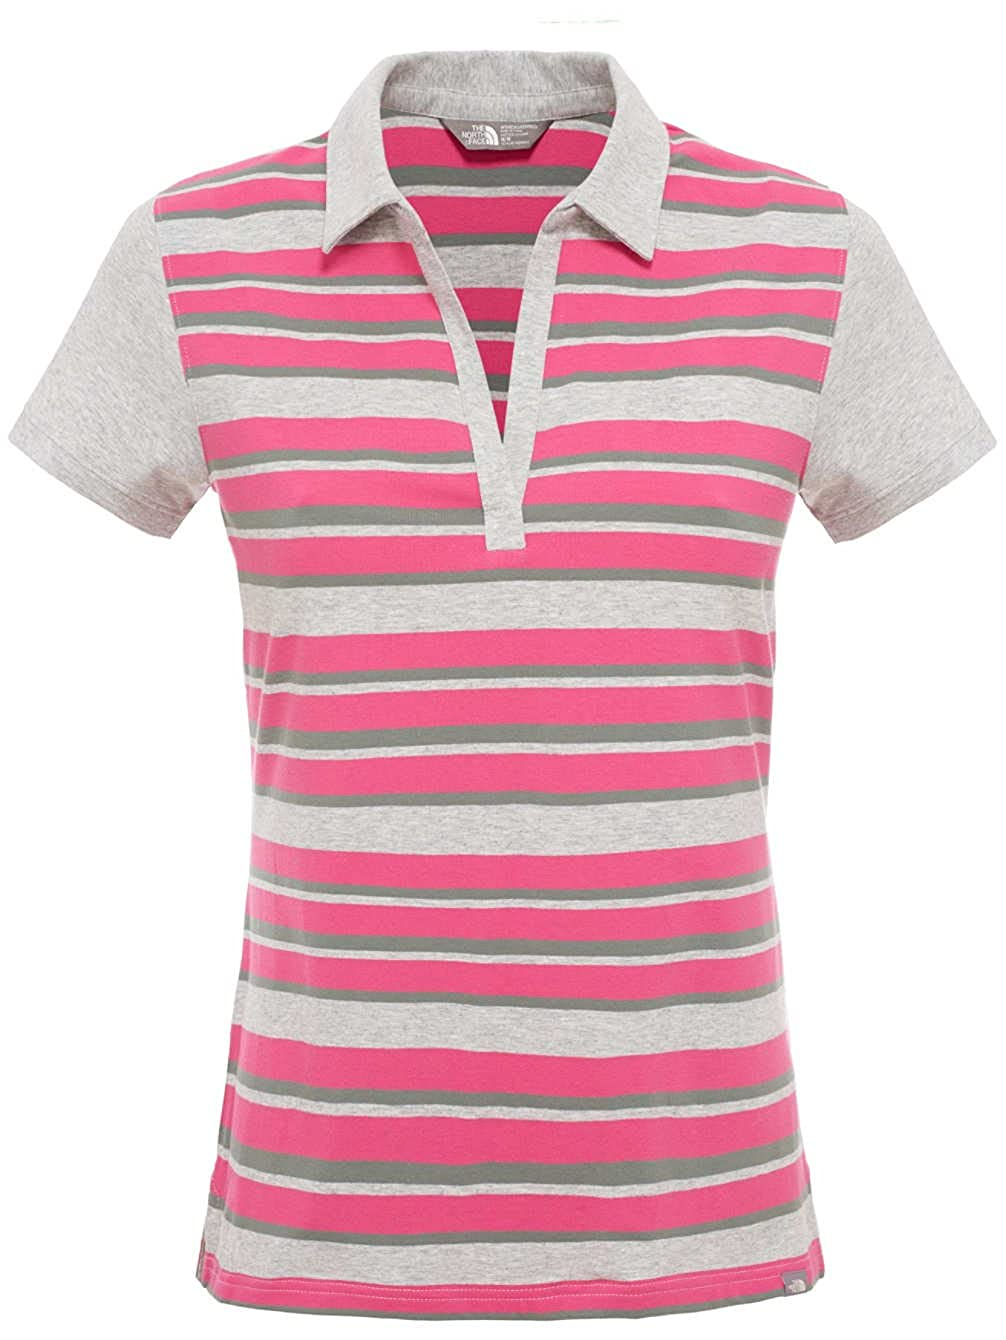 North Face Manicis - Polo para Mujer, Color Rosa, Talla XL: Amazon ...